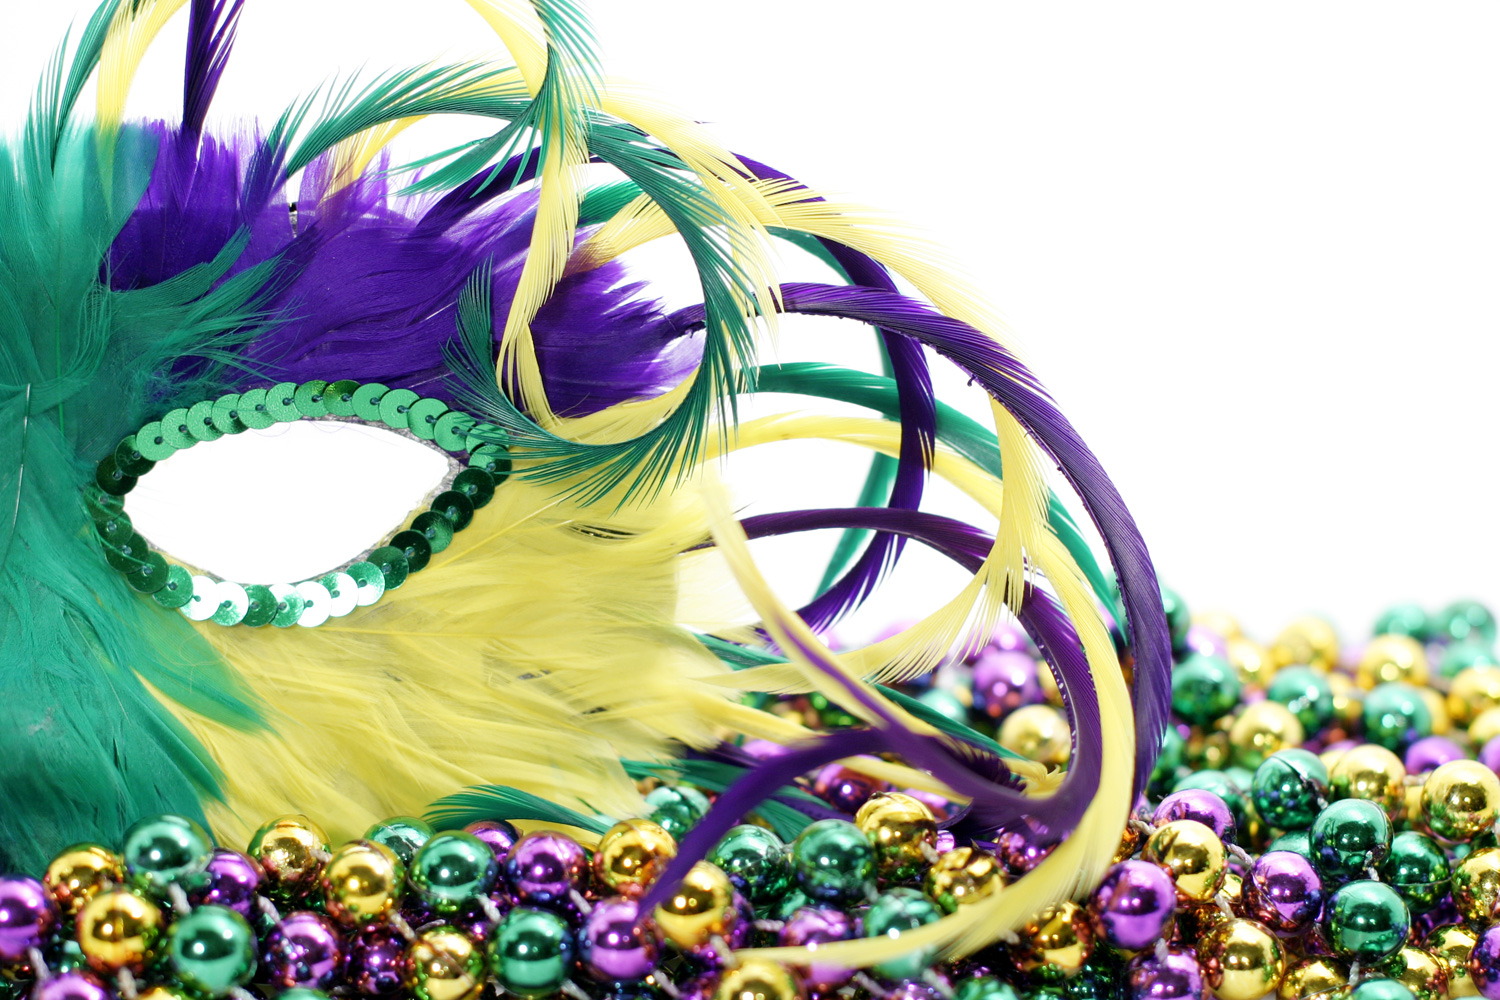 party best on pinterest and diy mardi beads punchbowl to masks images make carnival using colorful easy gras